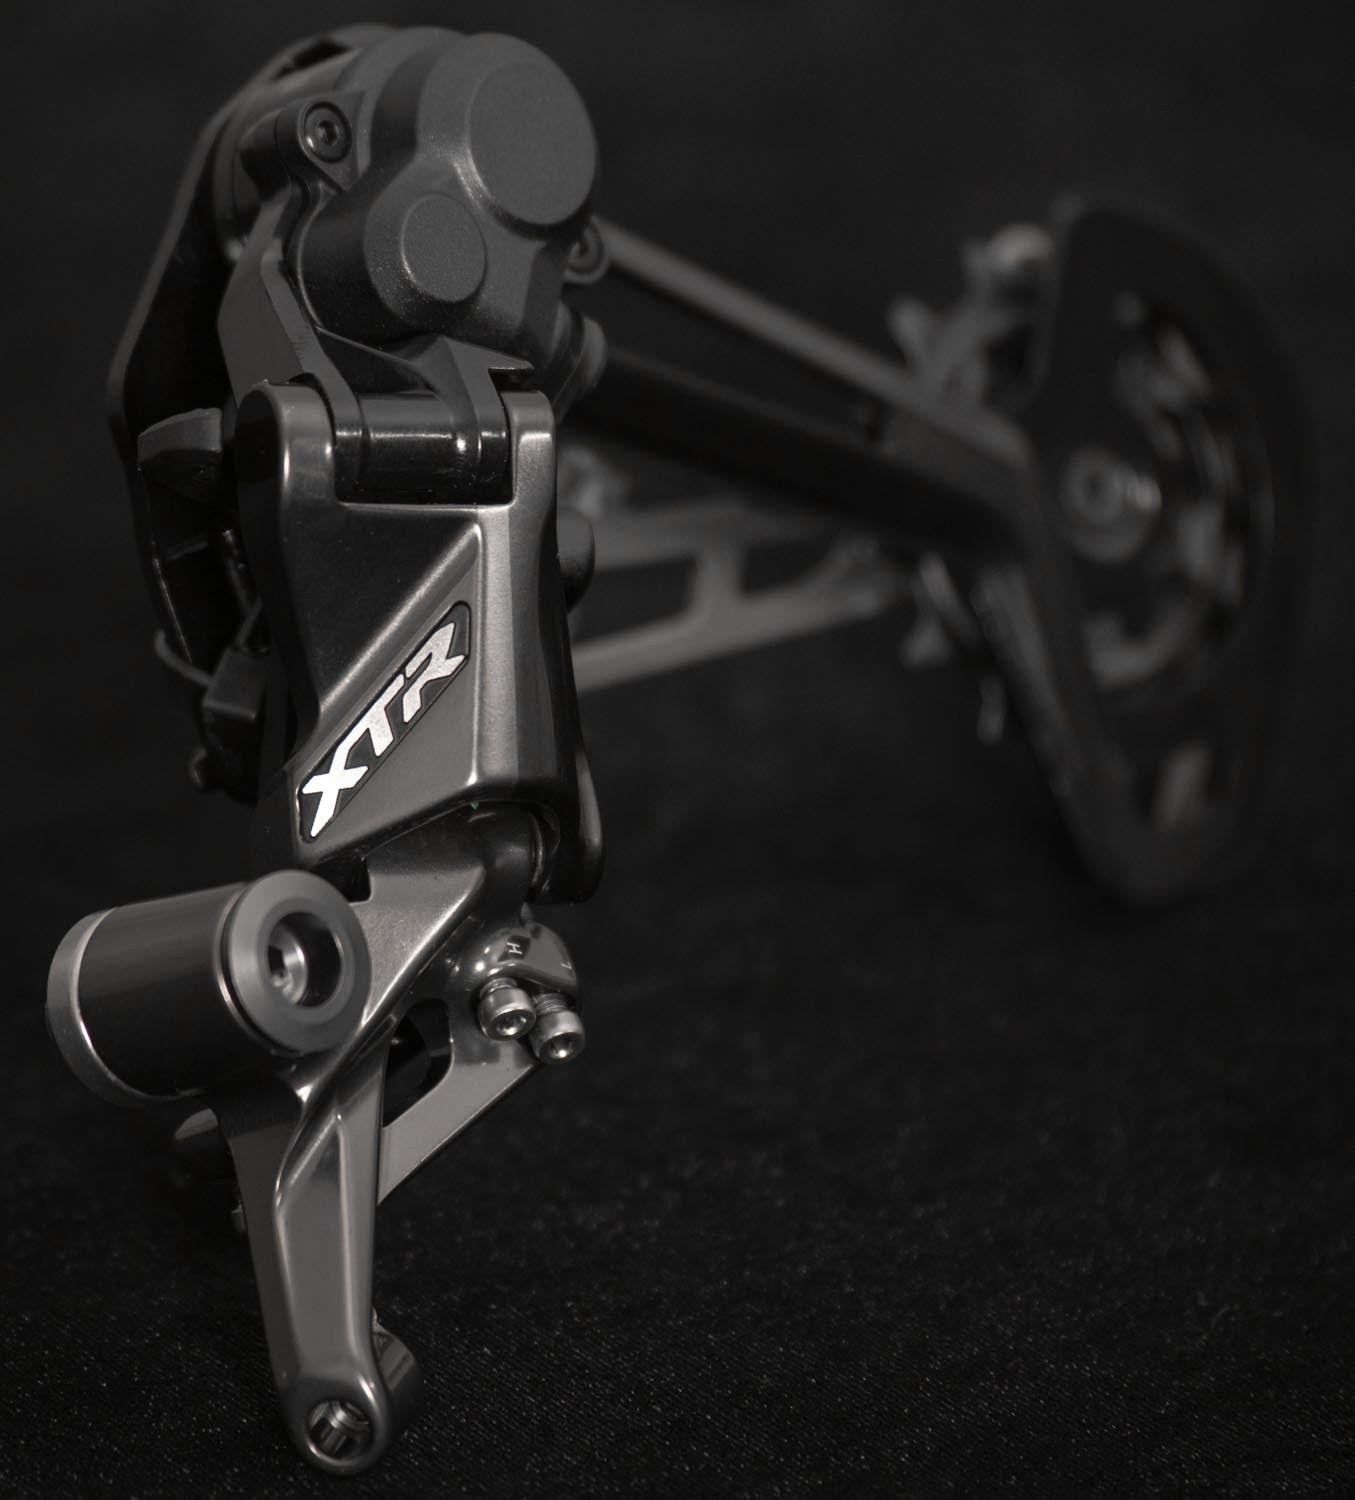 Shimano XTR M9100 Overview